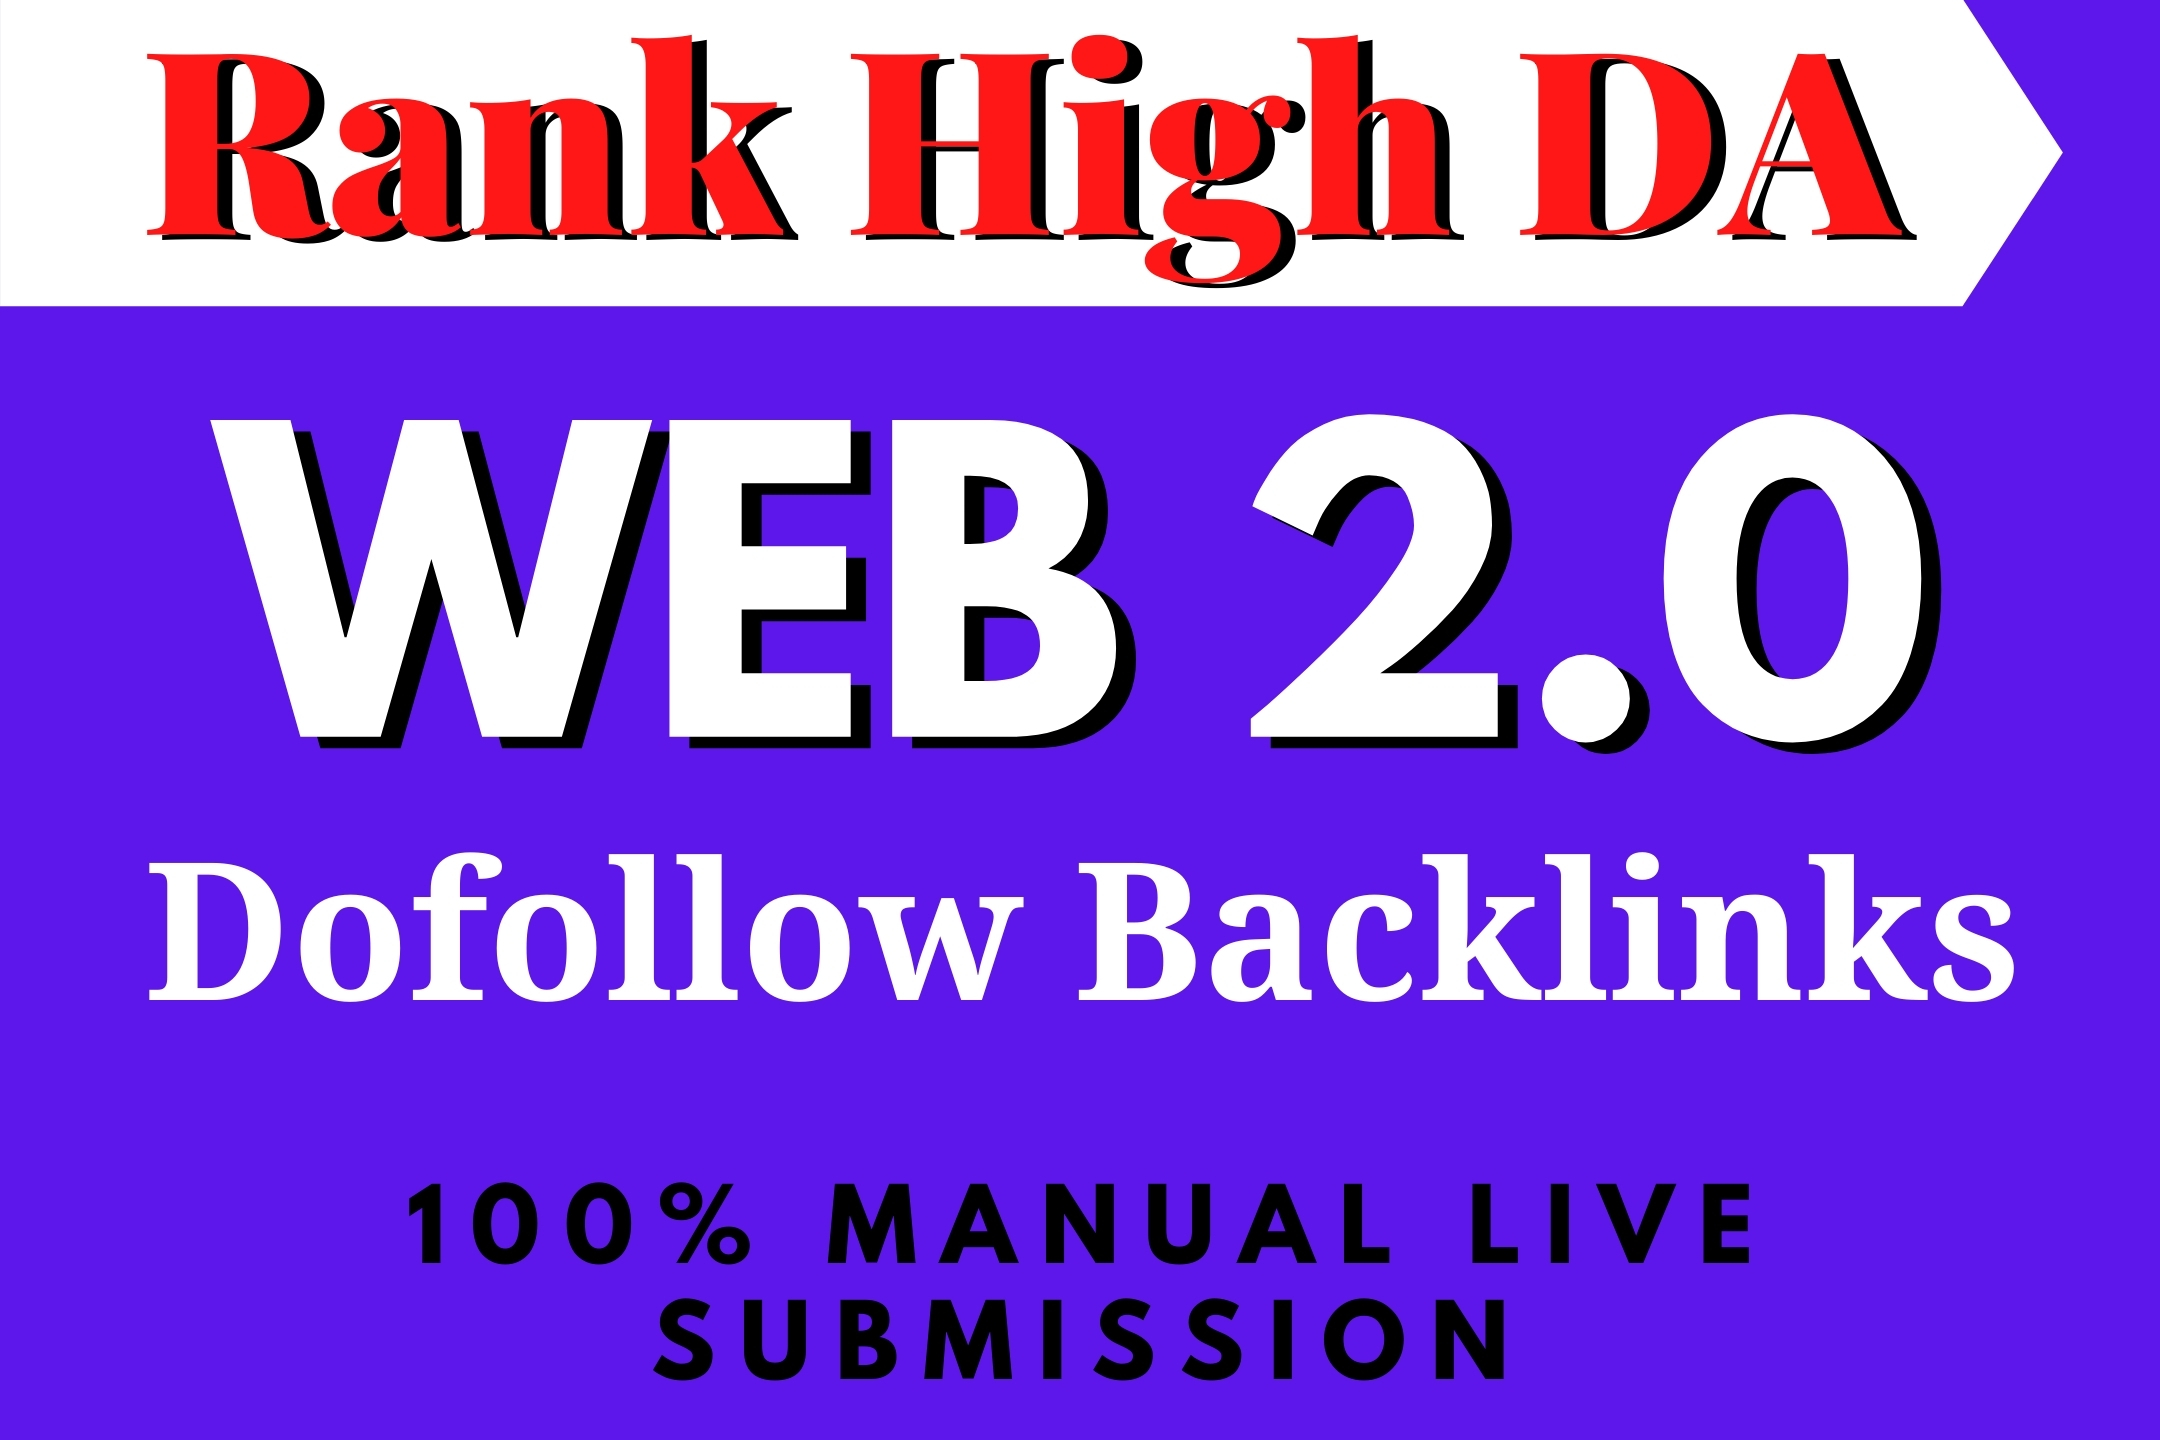 I will rank High DA 30 Web2 0 Backlinks SEO on Google